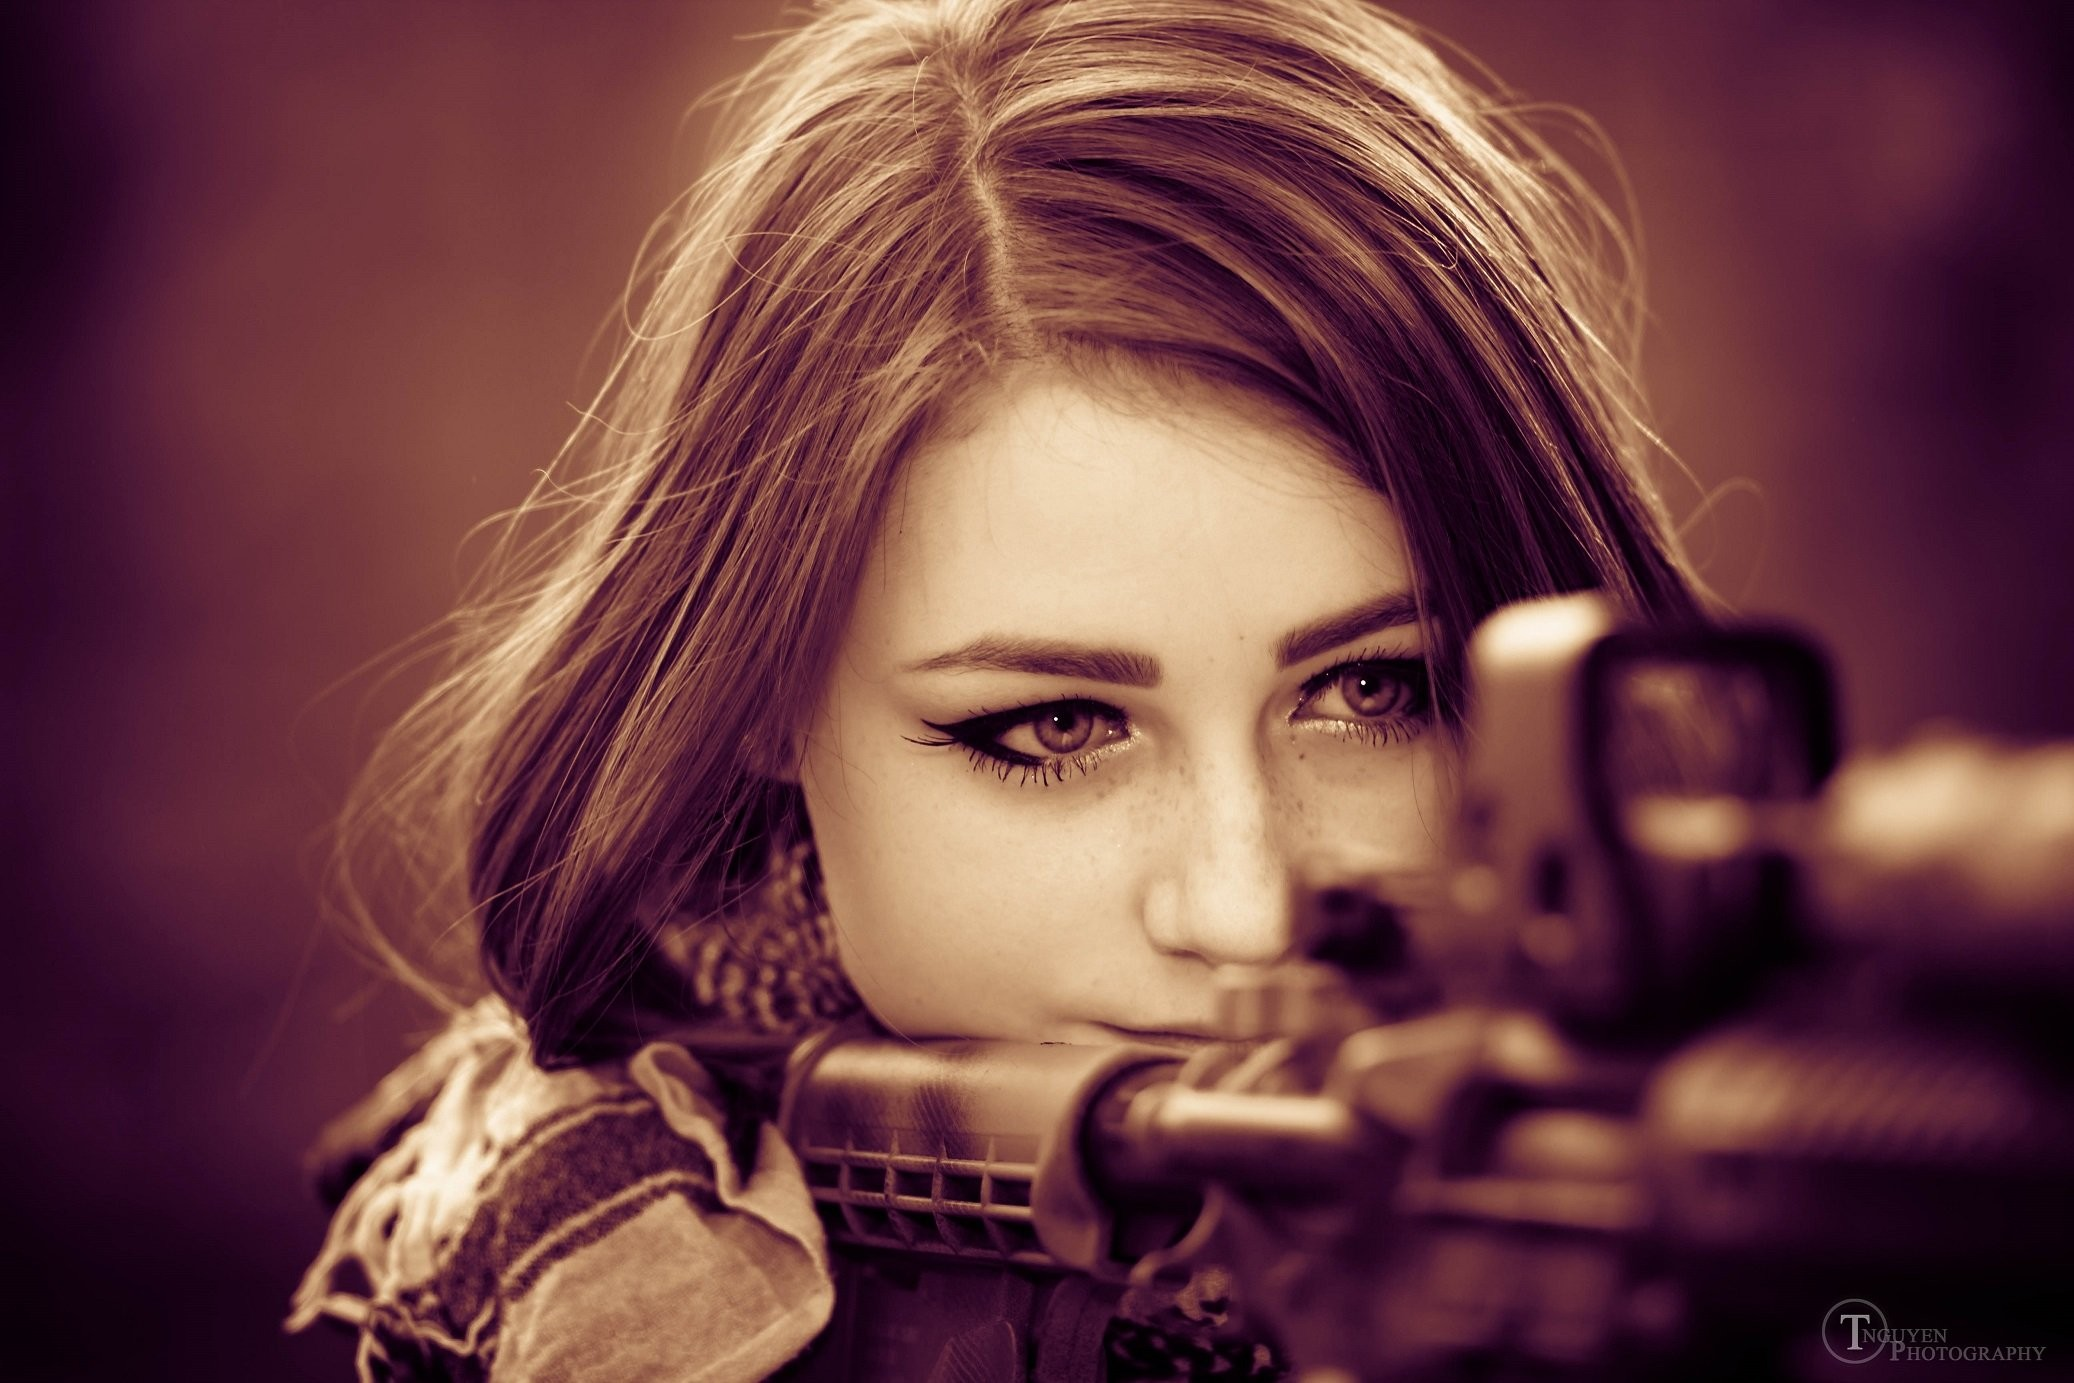 Sikh Wallpapers Hd For Iphone 5 Girls Amp Guns Full Hd Wallpaper And Background 2074x1383